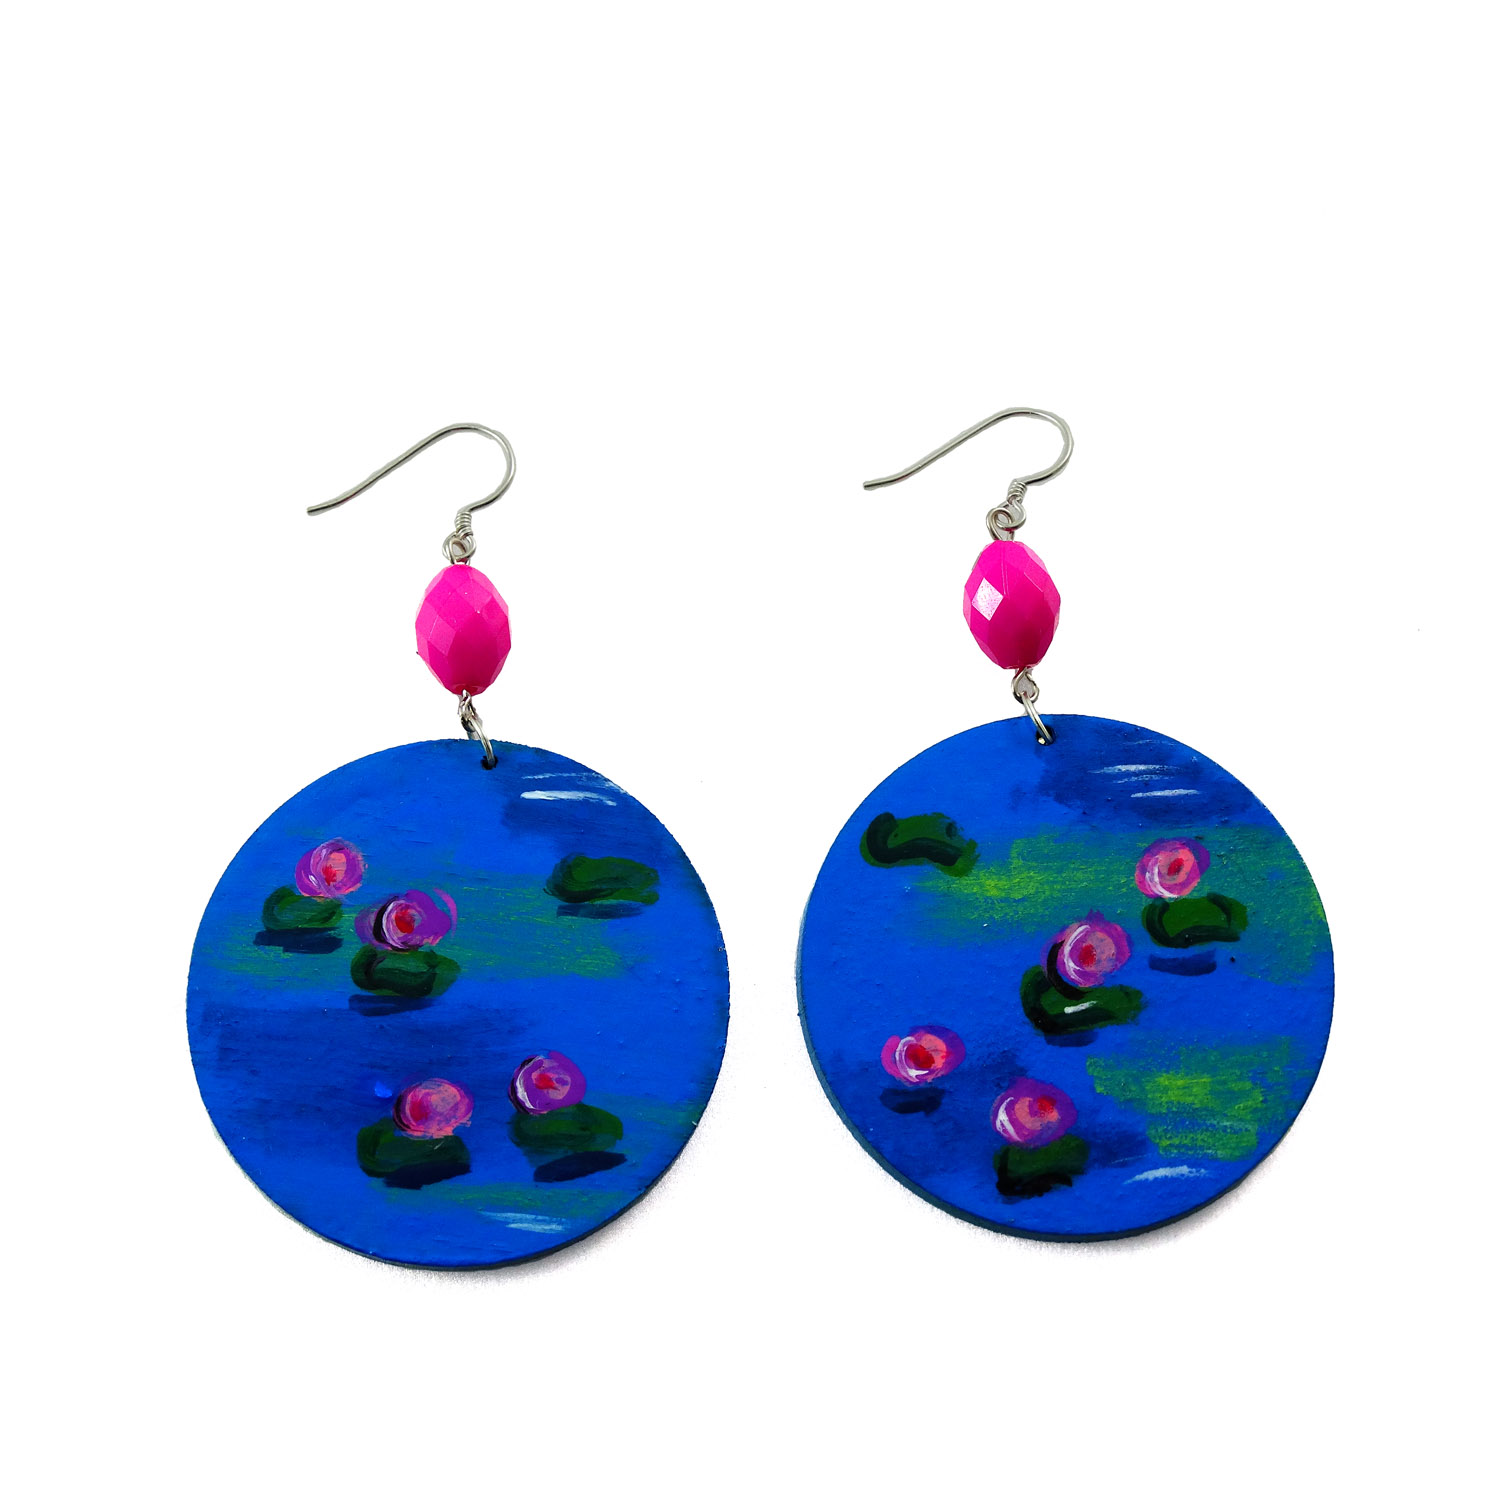 Hand-painted earrings - The water lilies by Monet